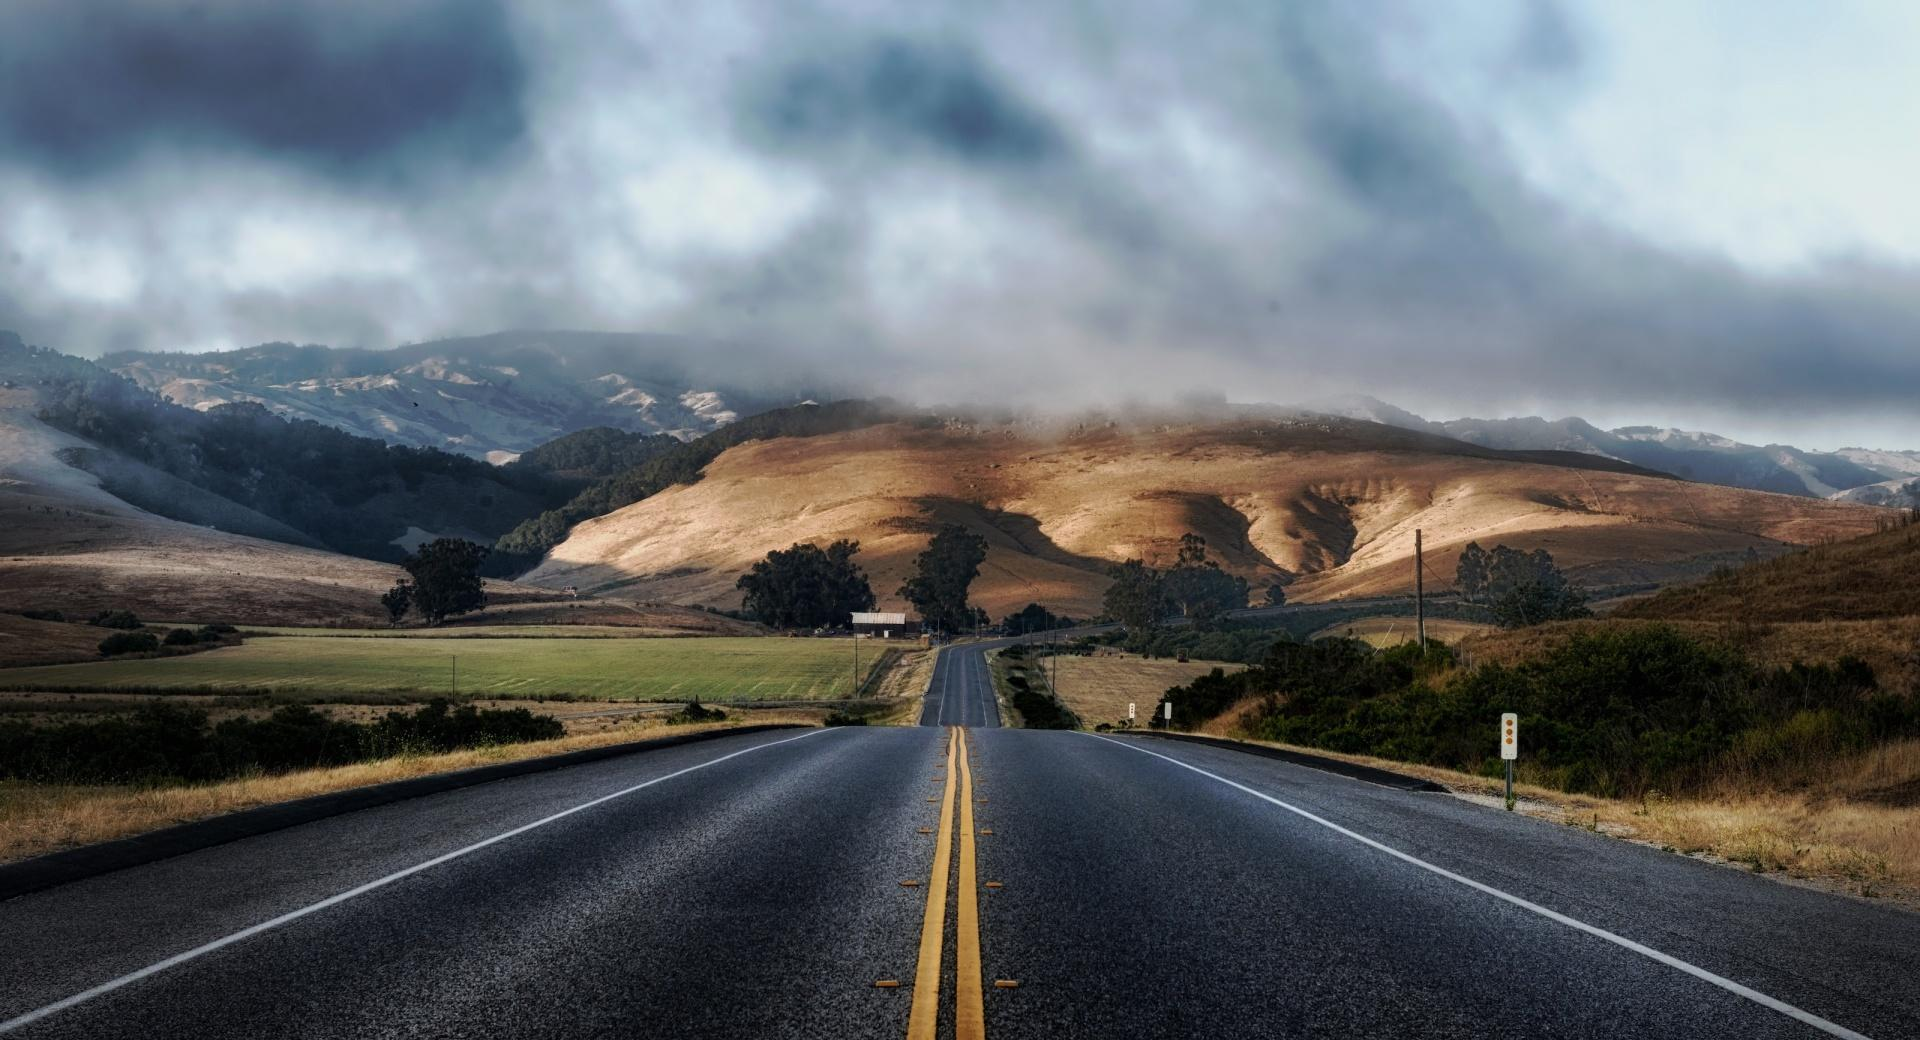 California Road wallpapers HD quality